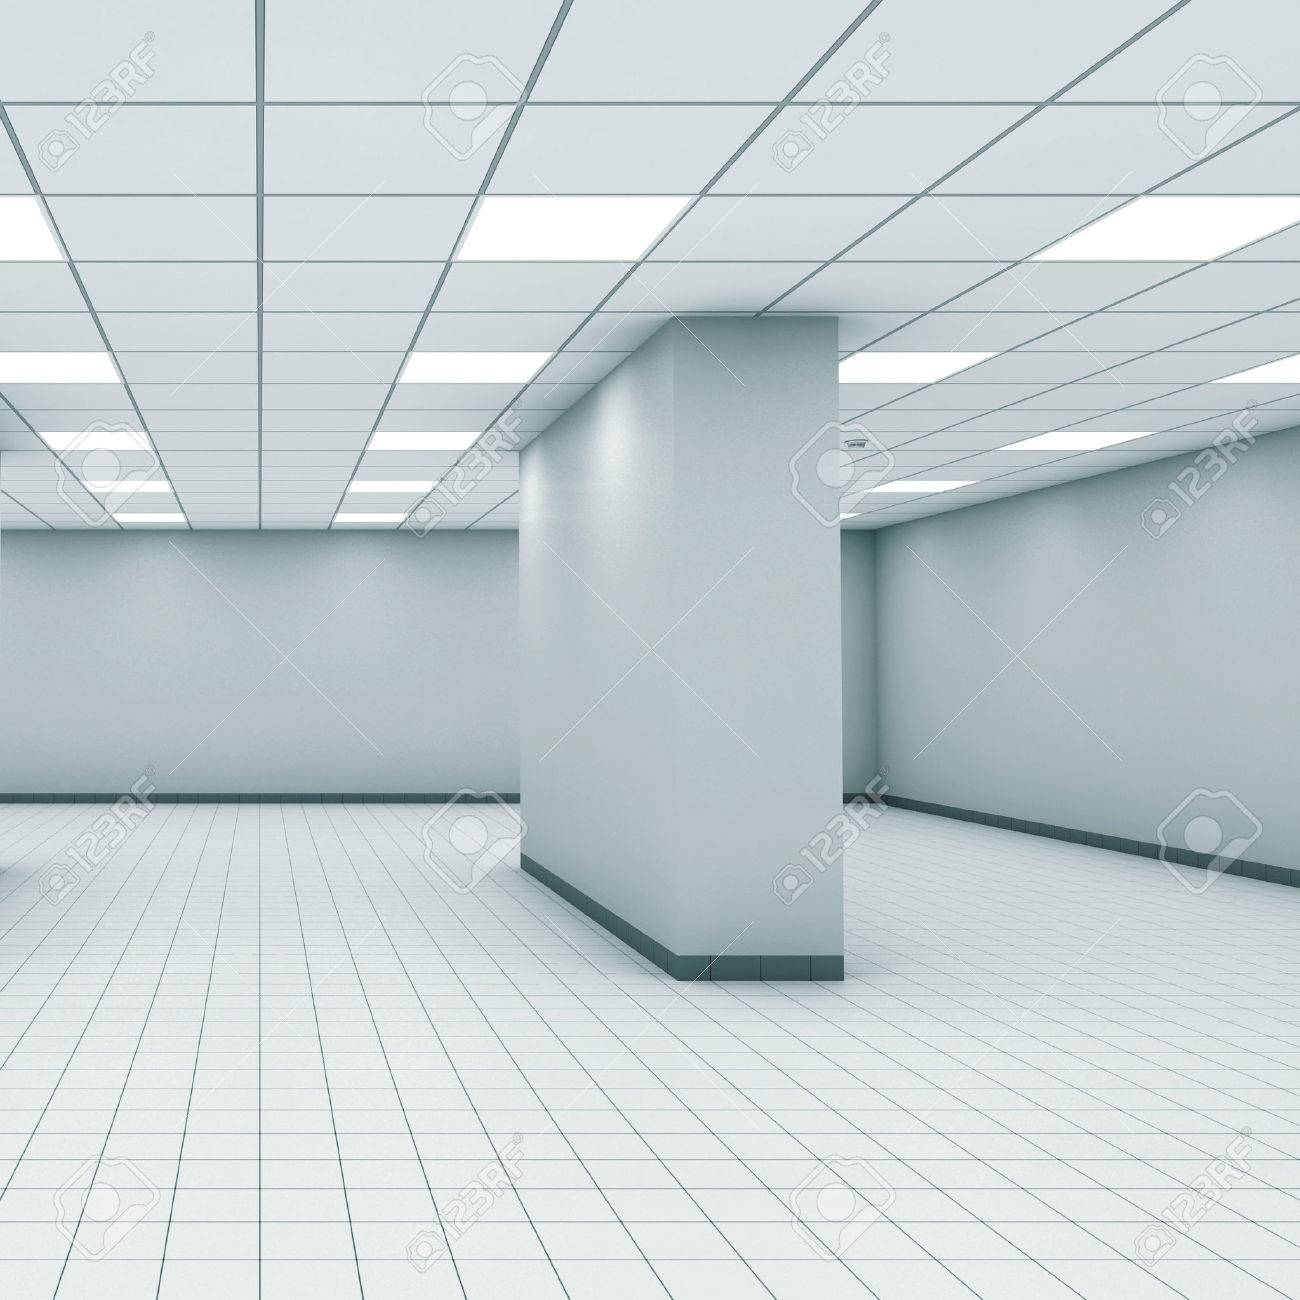 office ceiling lamps abstract empty office room interior with column ceiling lights and floor tiling 3d architecture ideas lobby office smlfimage